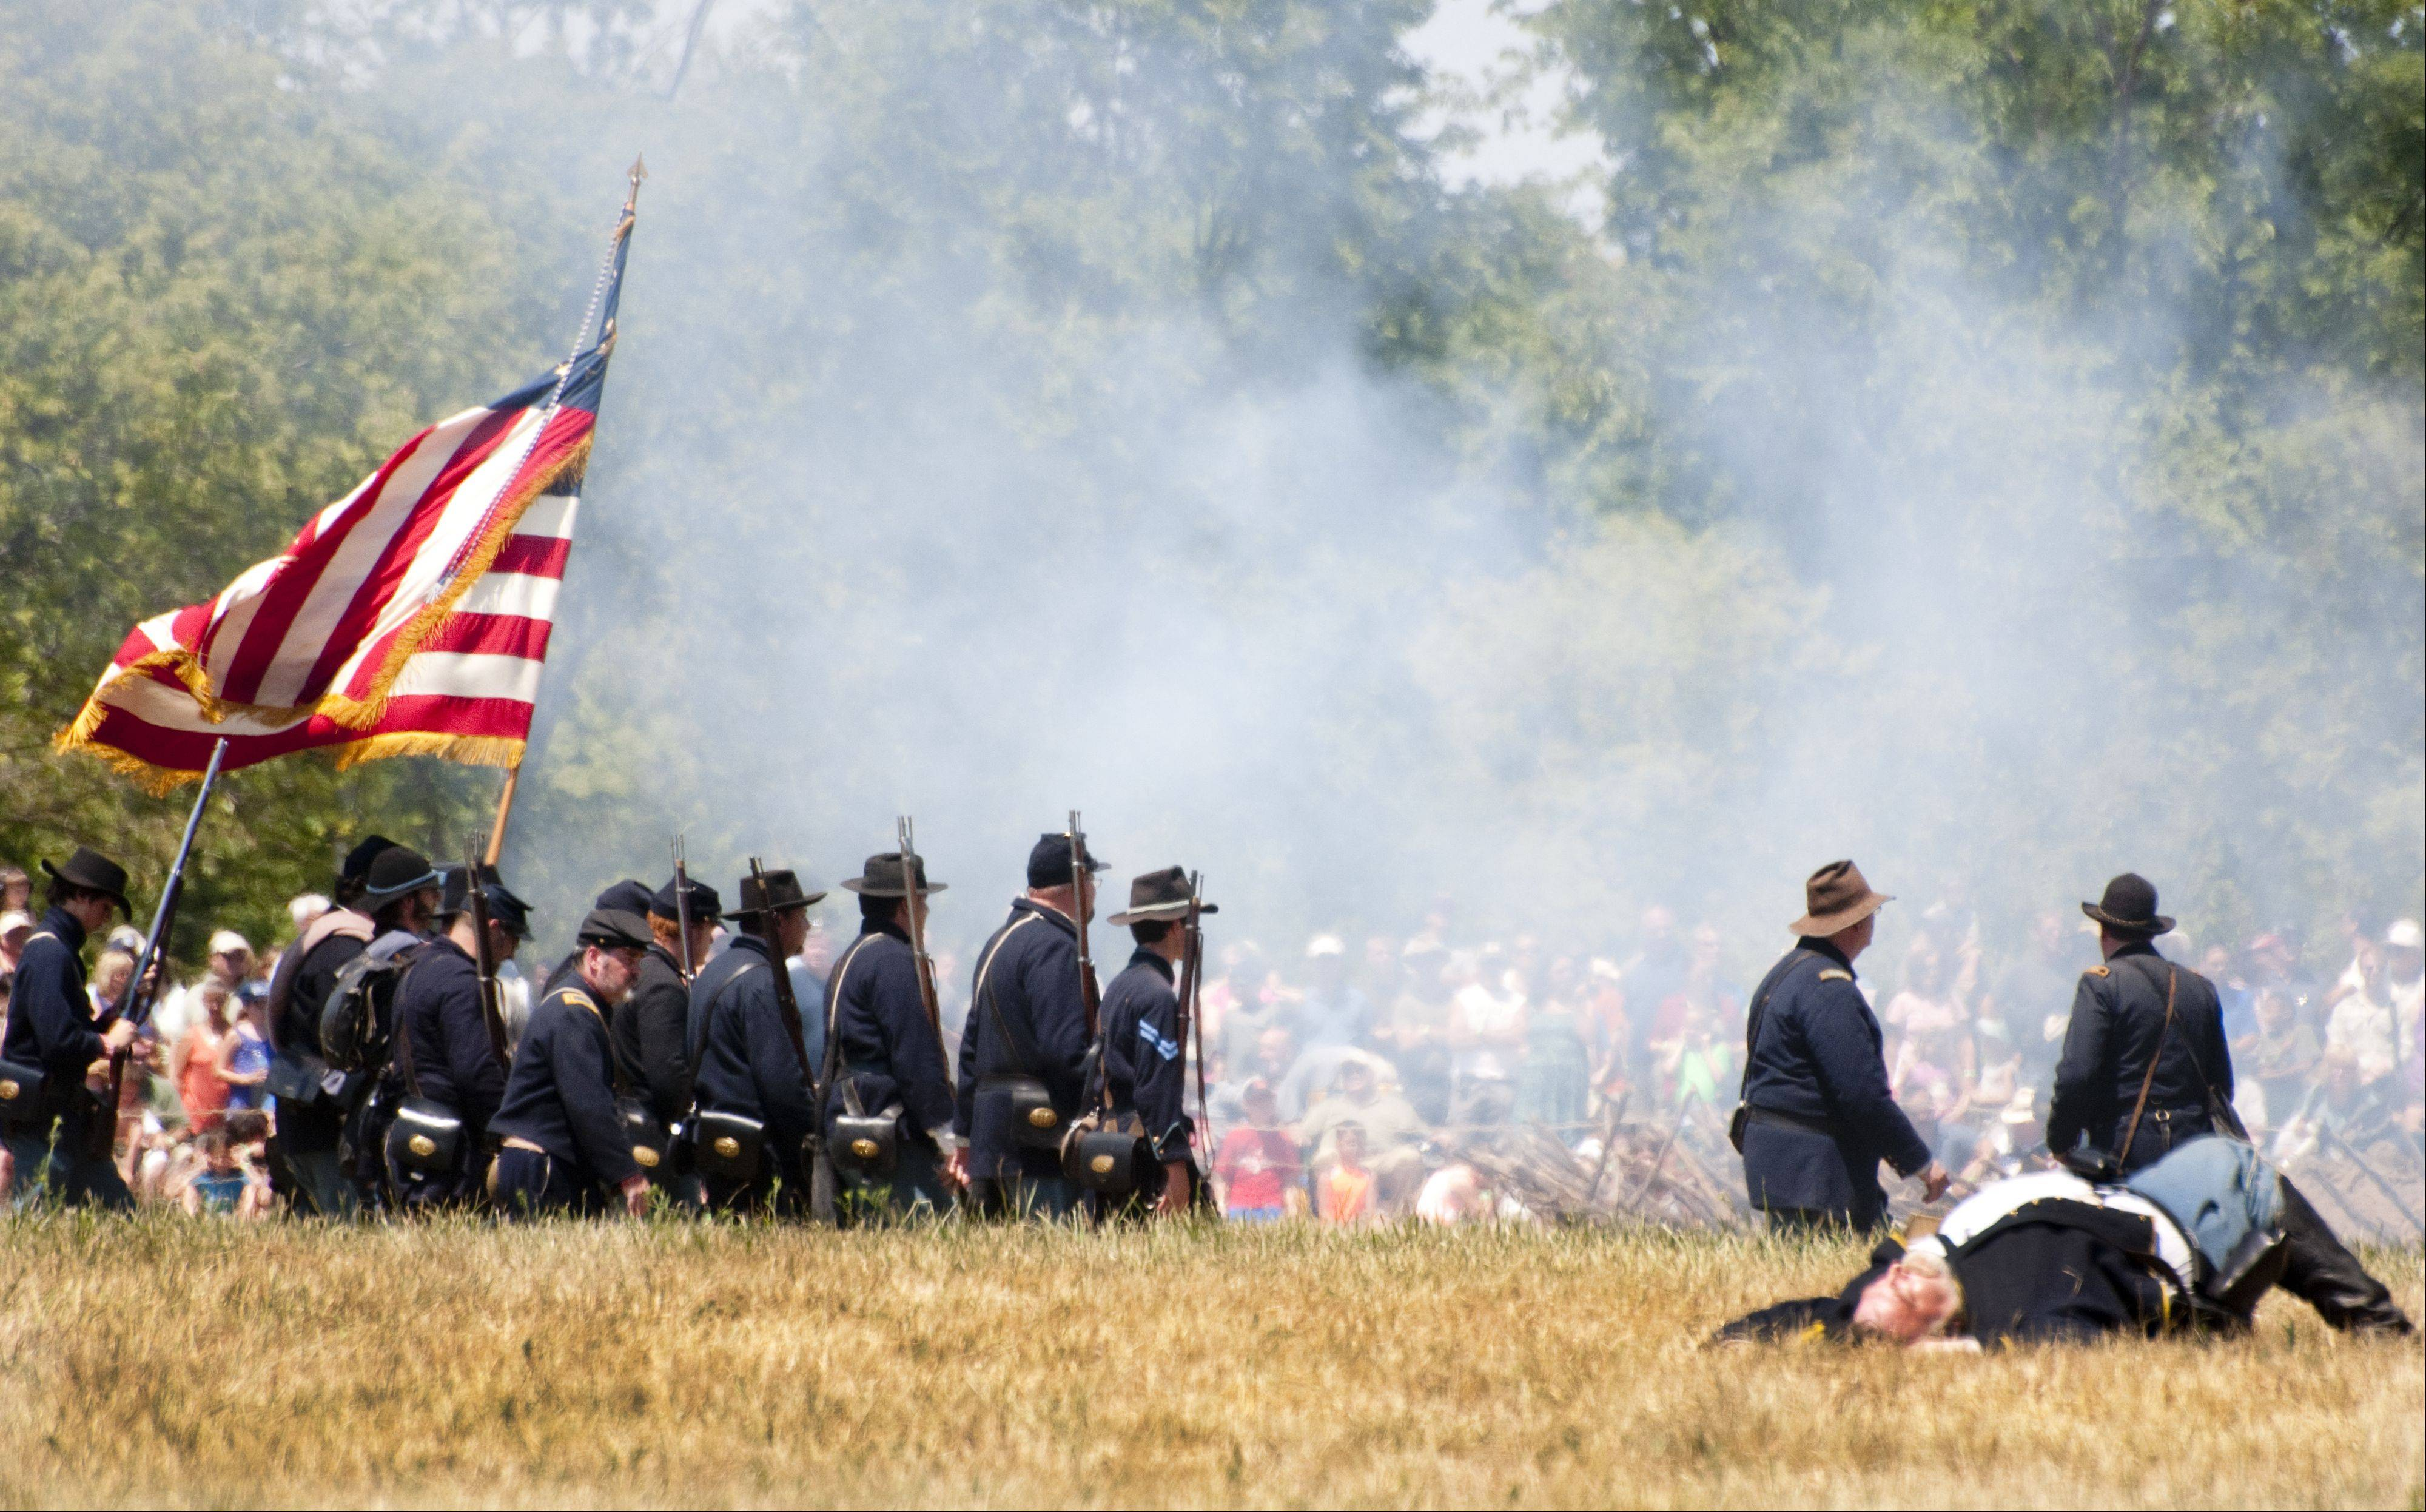 Union troops advance on the Confederates during a battle re-enactment as spectators observe Sunday during Civil War Days in the Lakewood Forest Preserve near Wauconda.